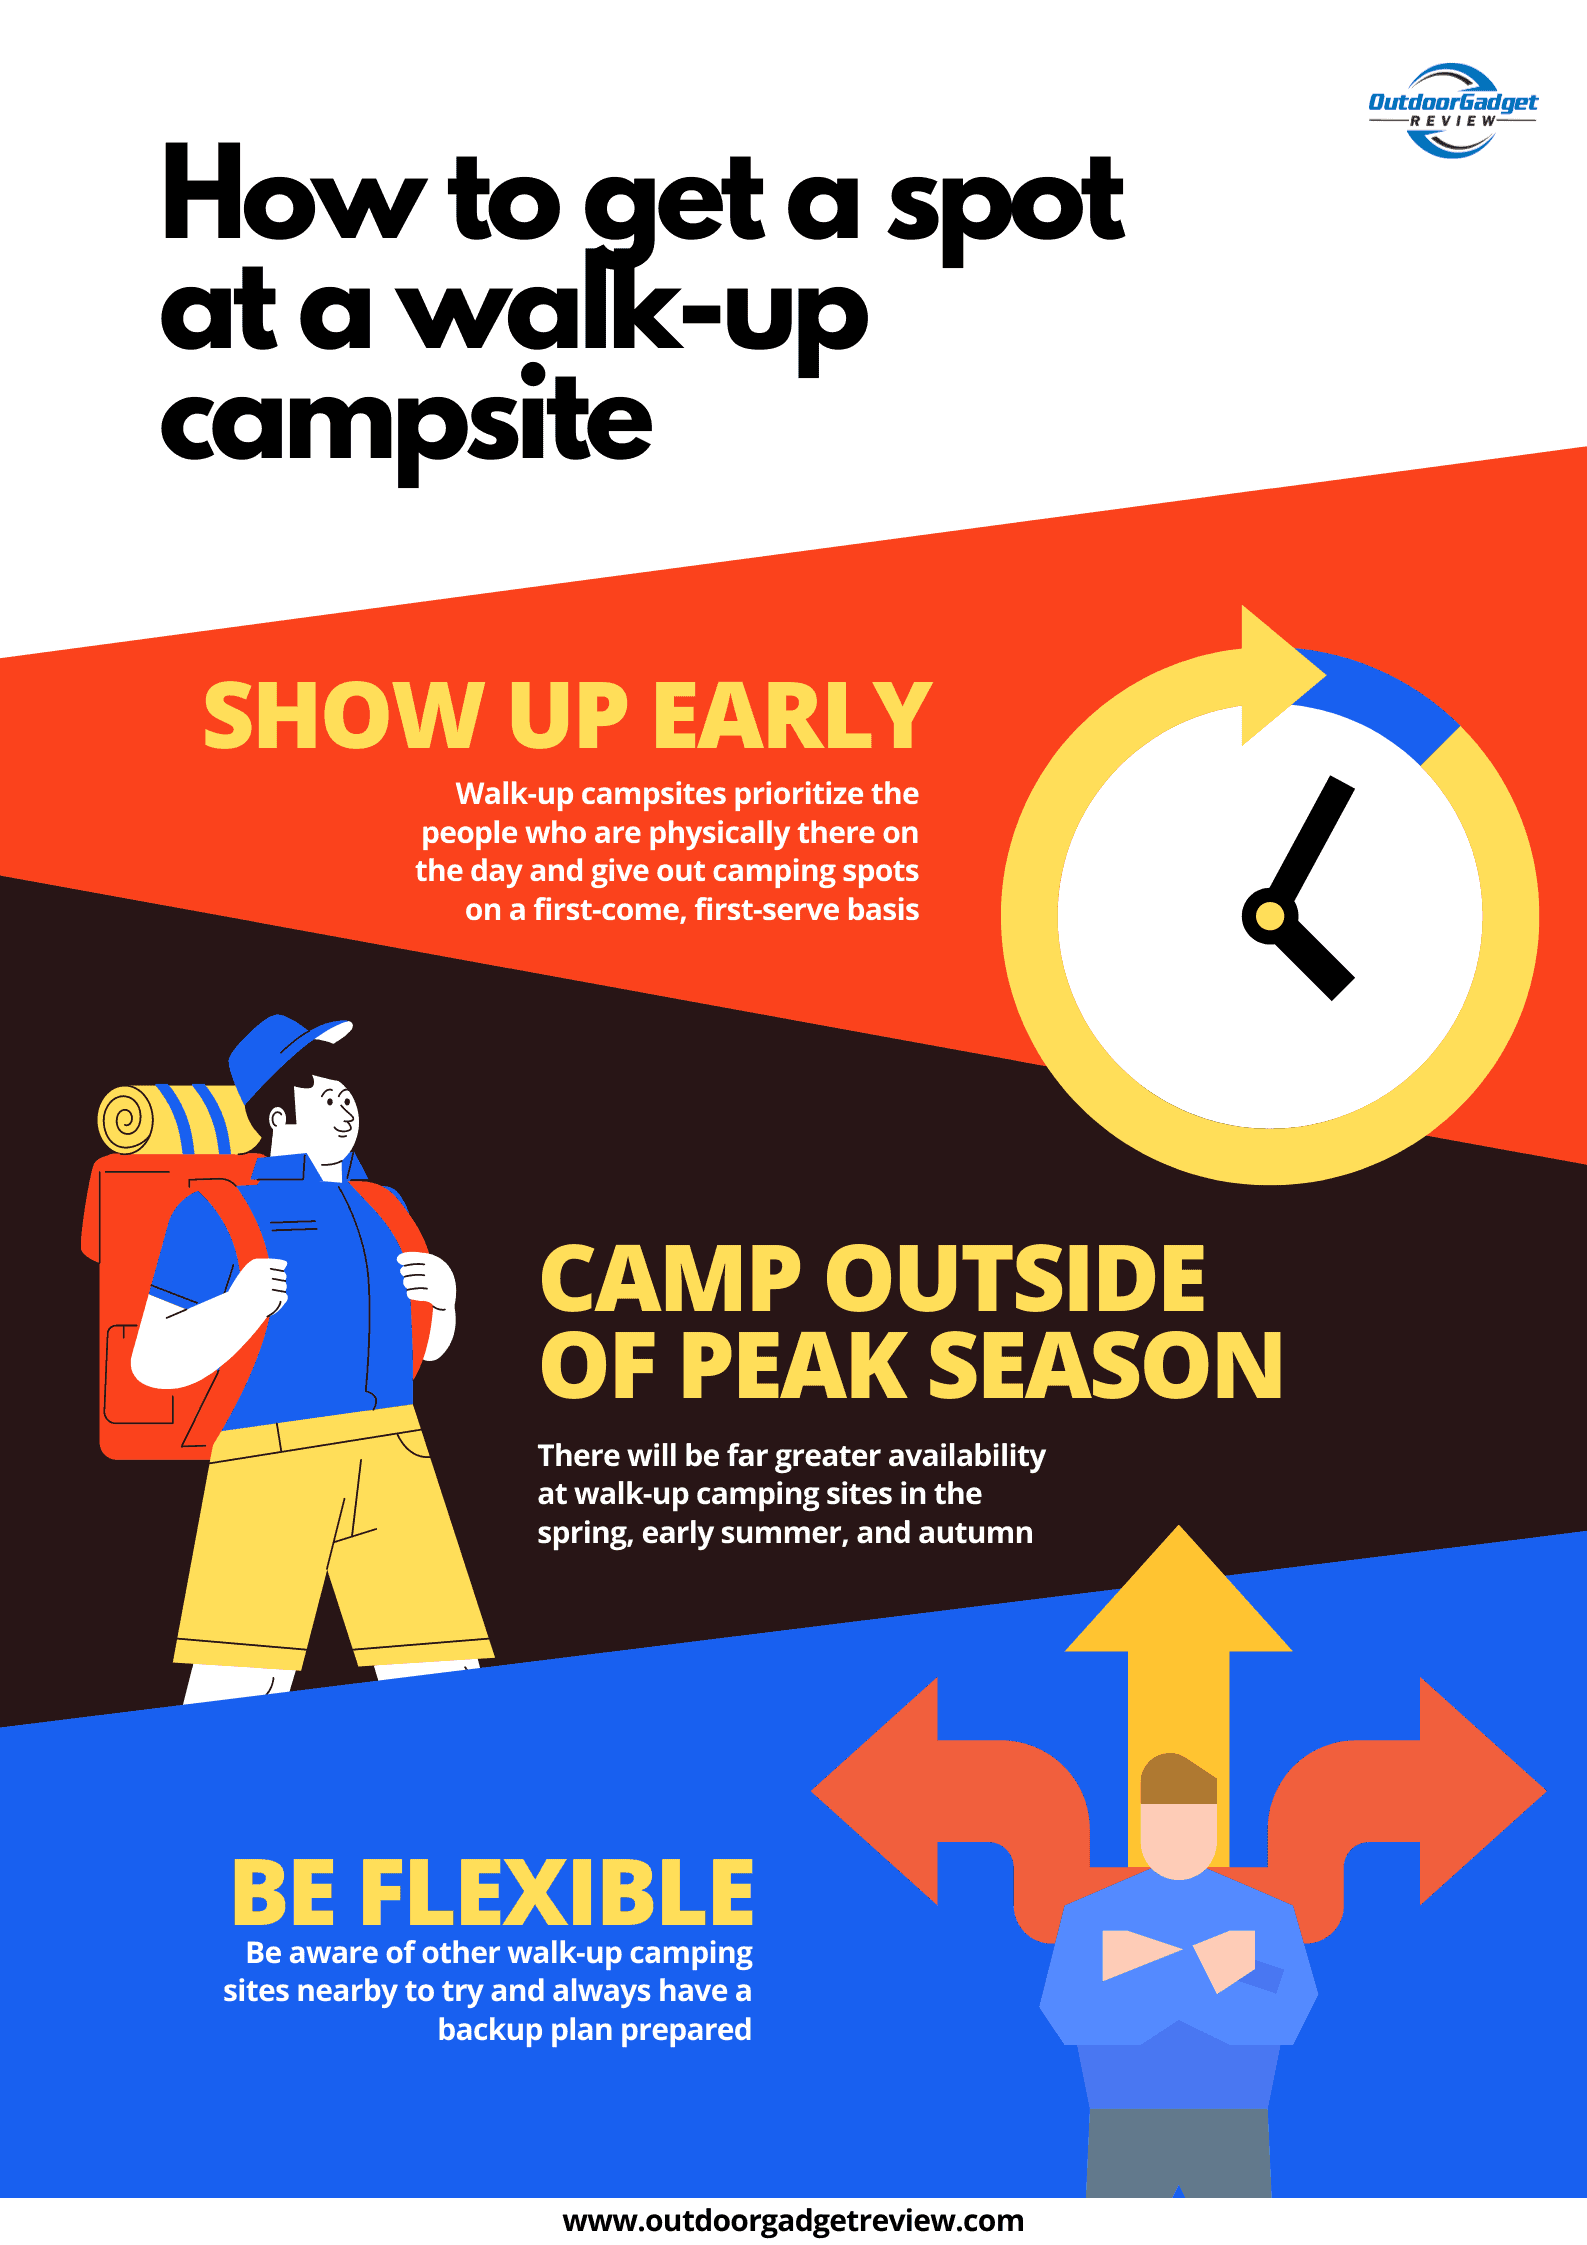 How to get a spot at a walk-up campsite